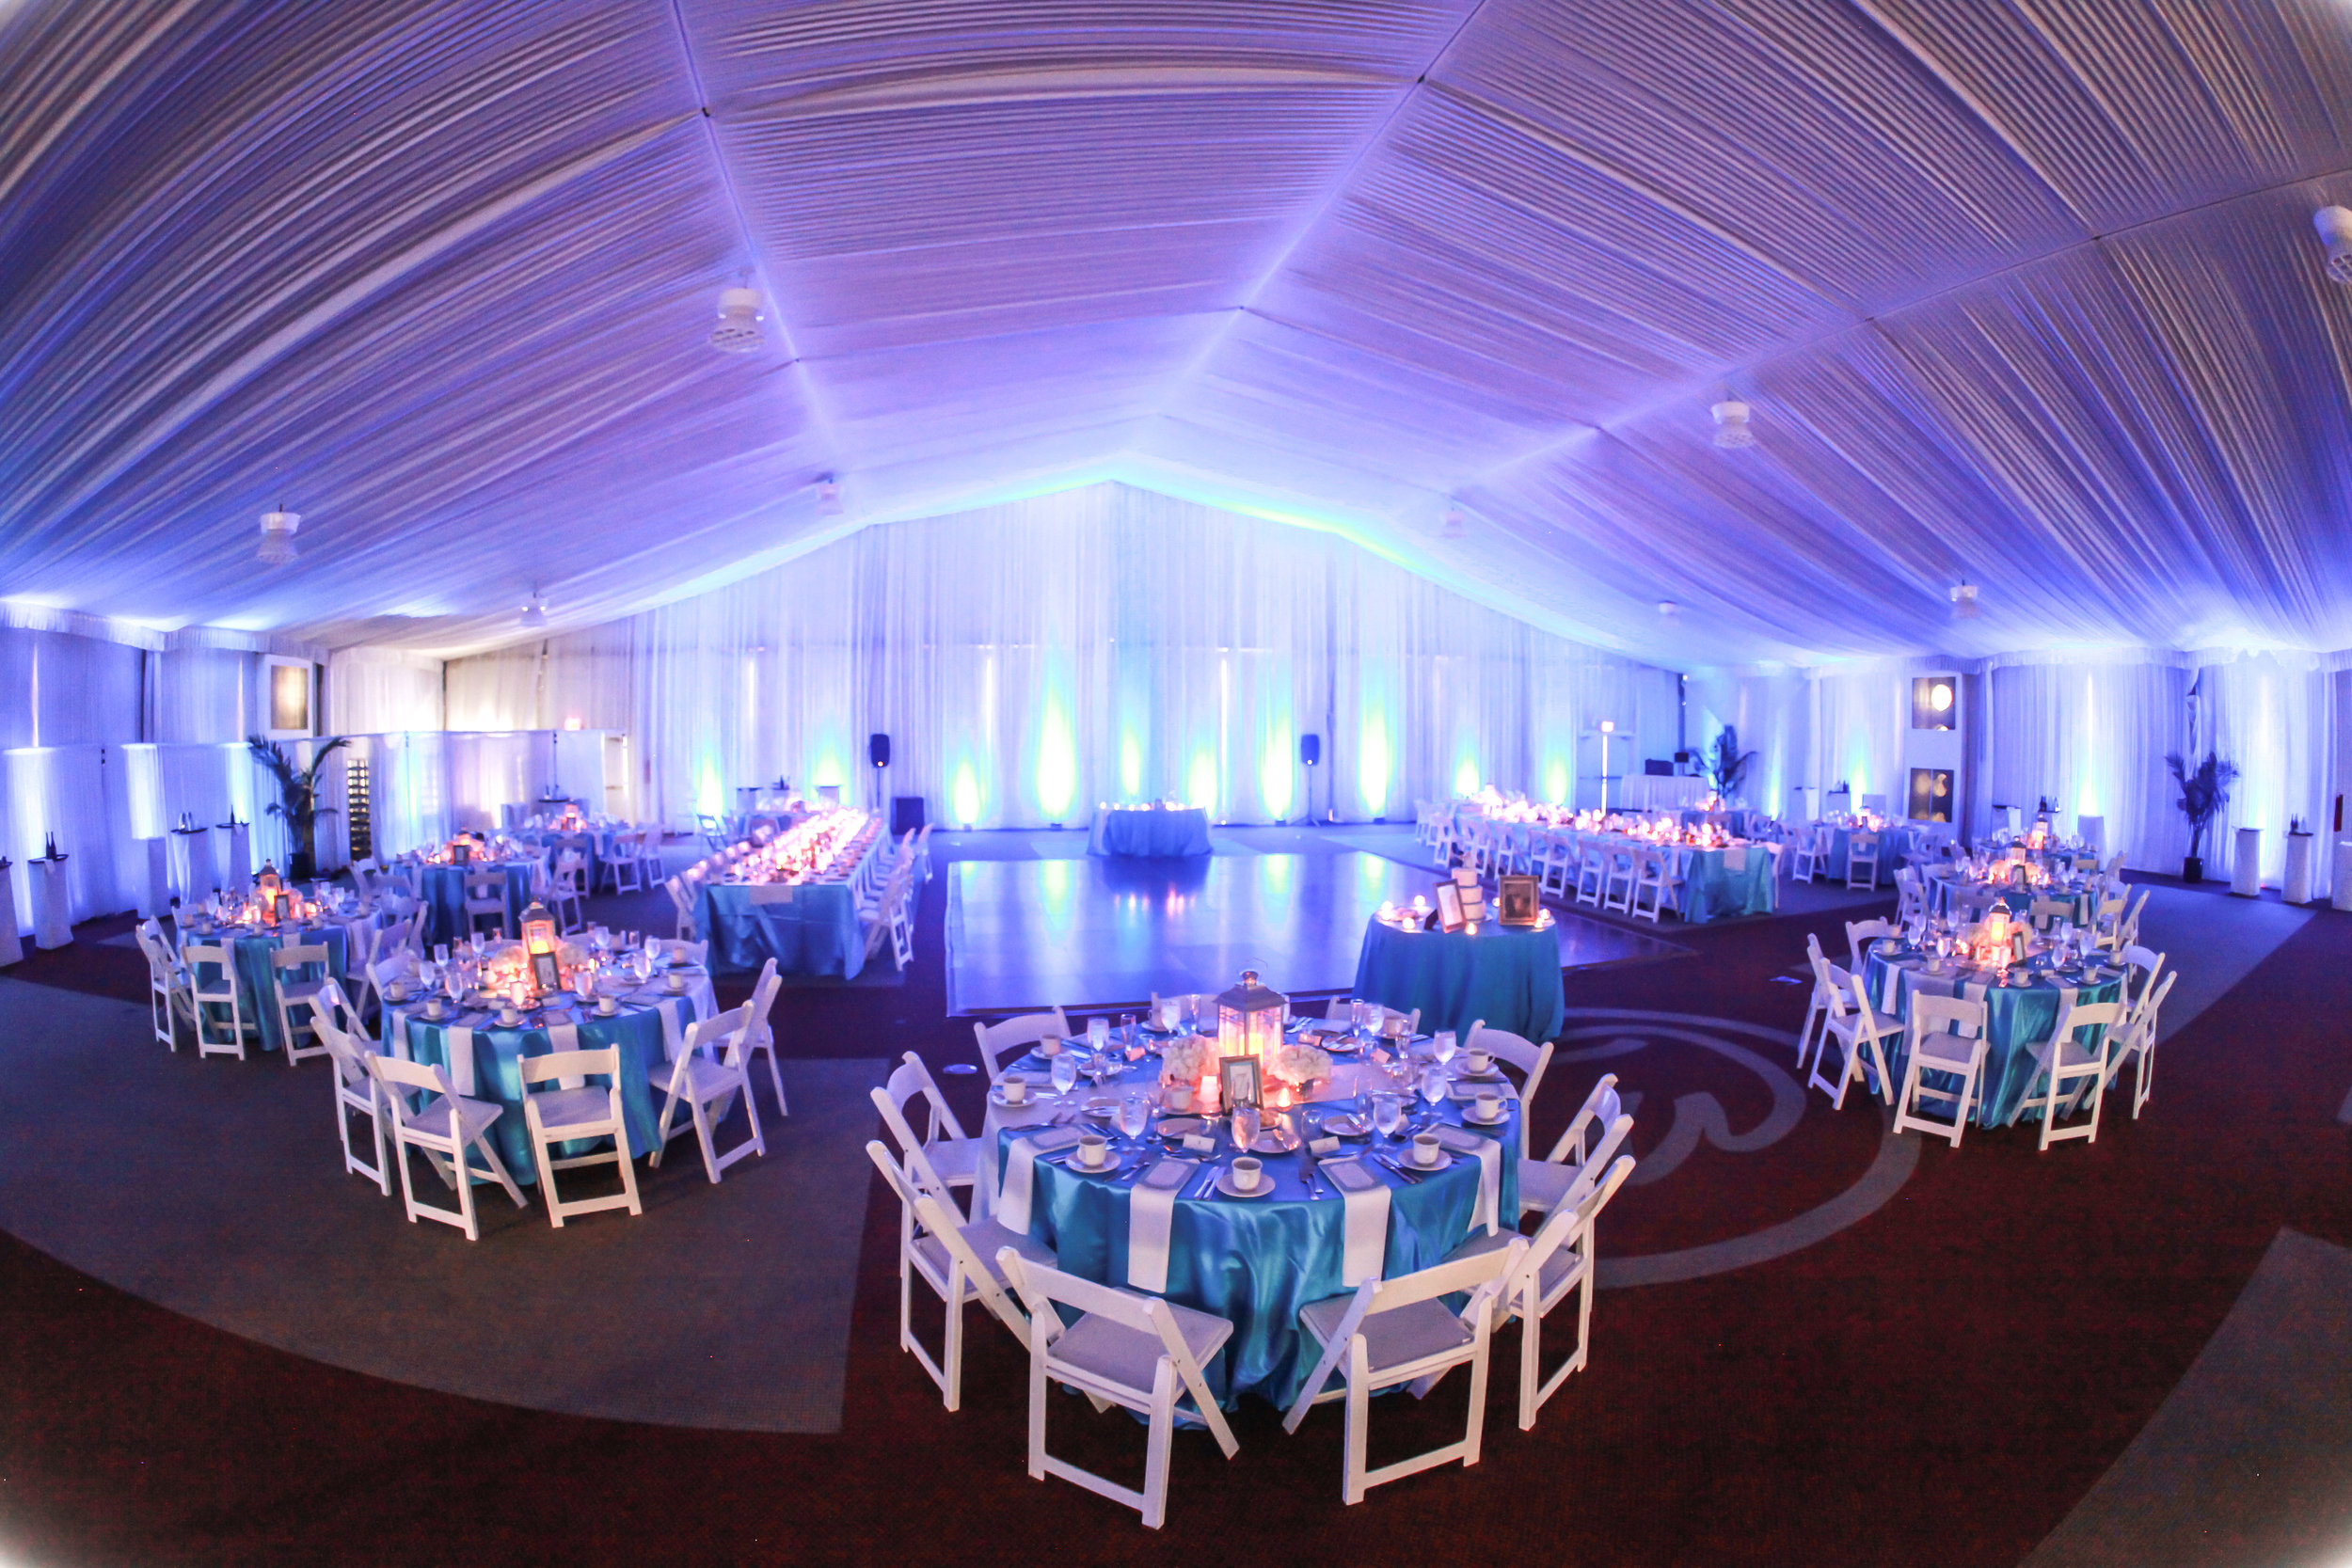 The reception was held in the event pavilion, fully draped with chiffon drapery from the ceiling and along the walls and completed with uplighting throughout in blue hues.